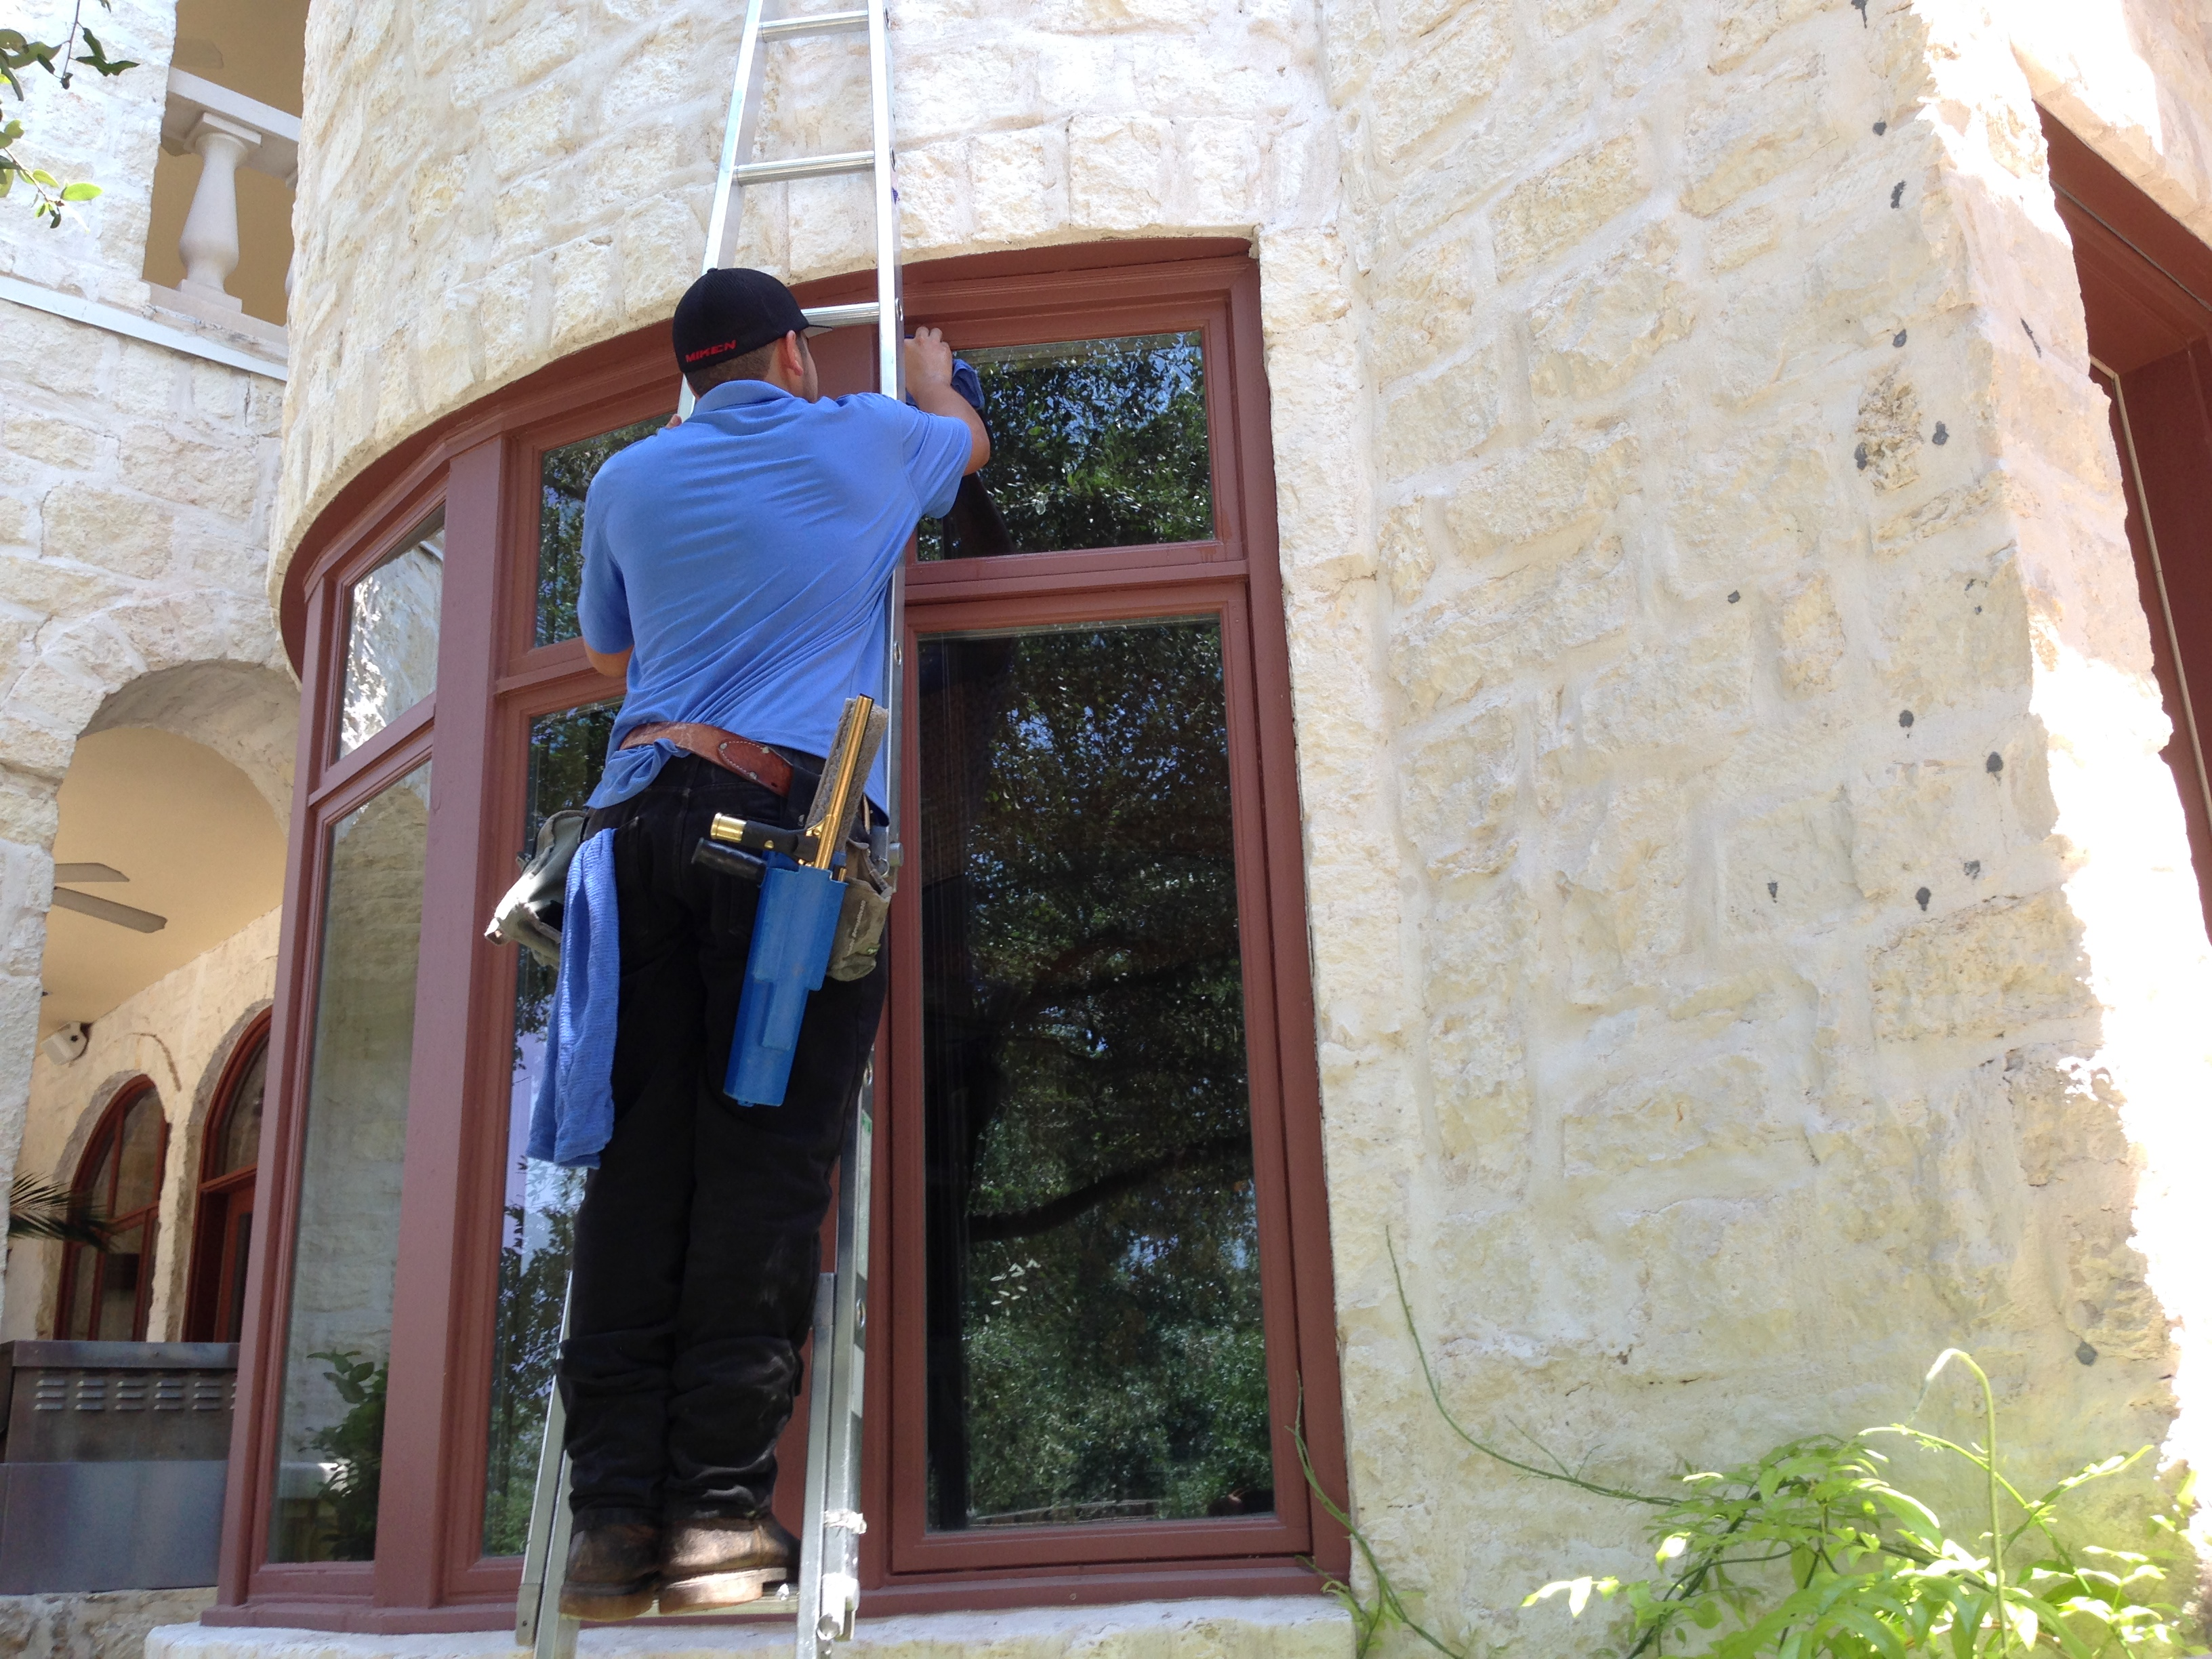 Uncategorized sparkling clean window company blog Sparkling image roof exterior cleaning